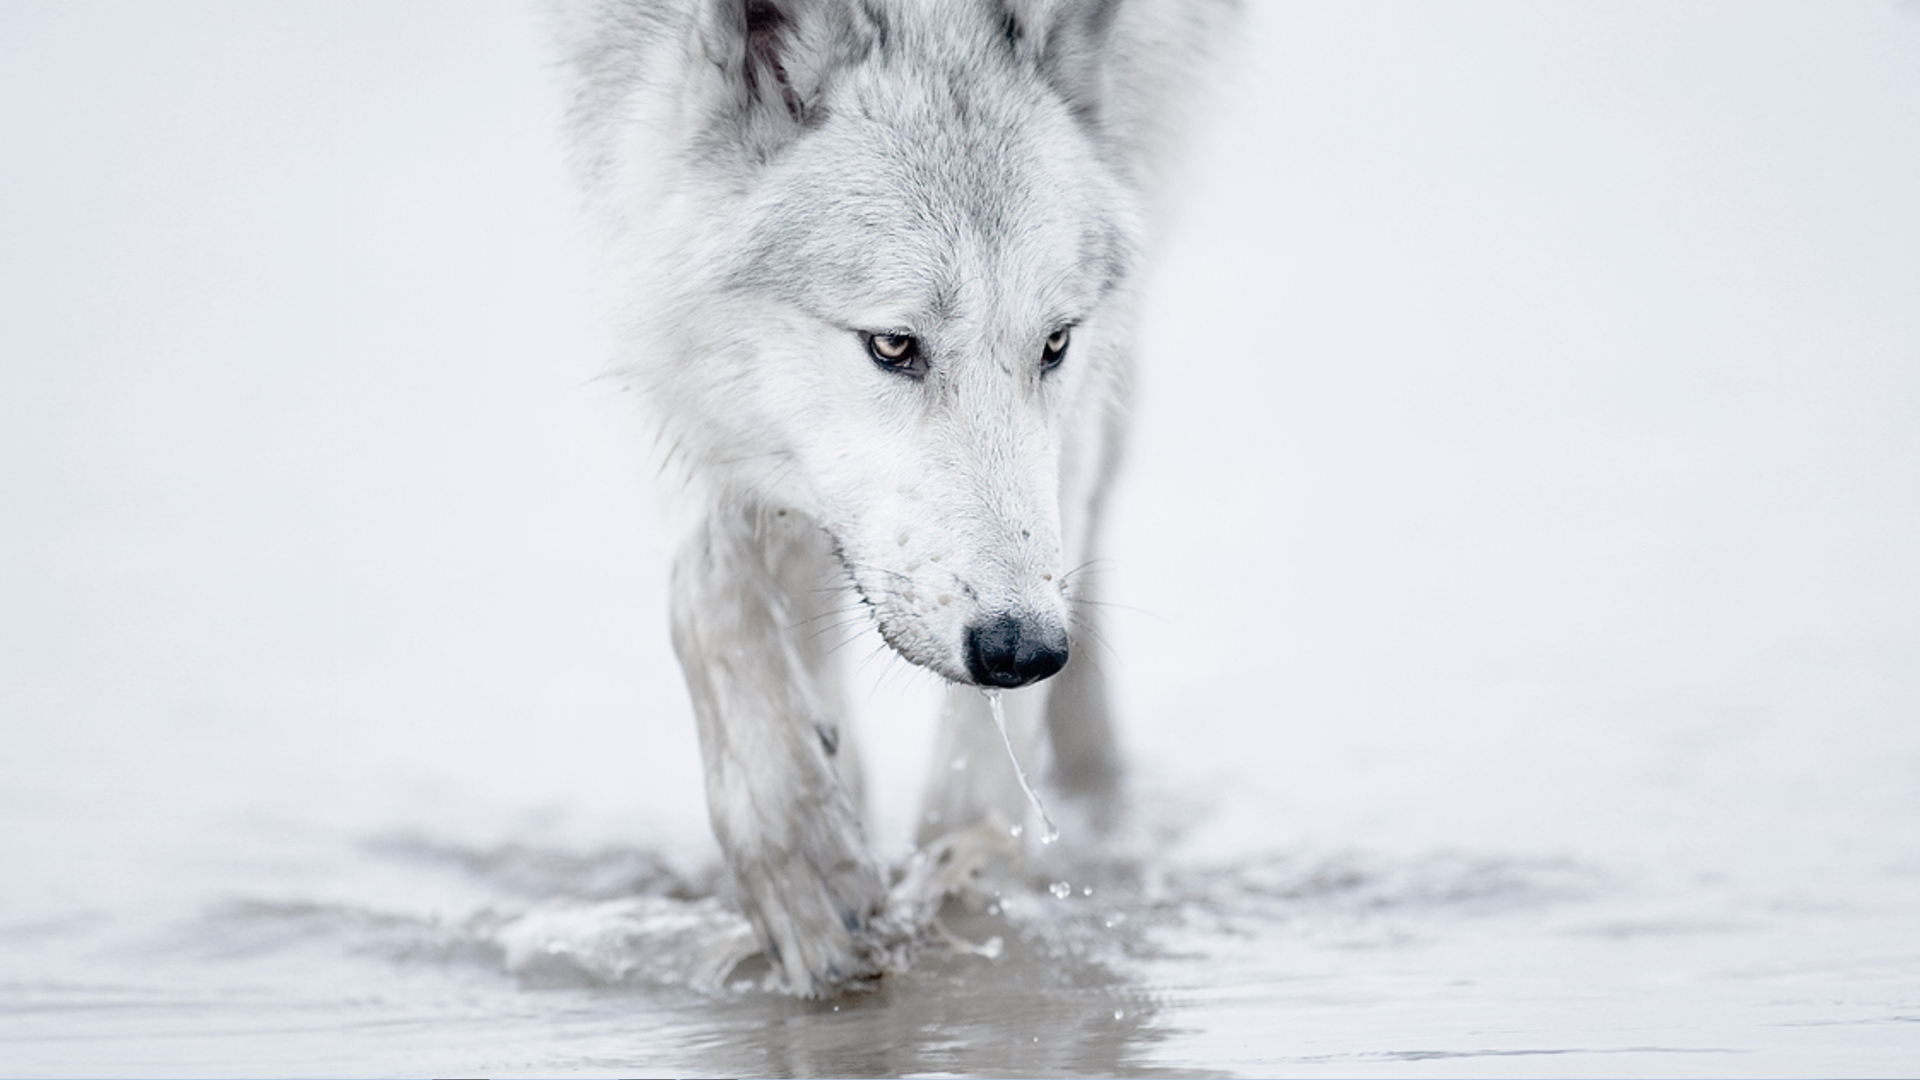 Winter Snow White Wolf Arctic